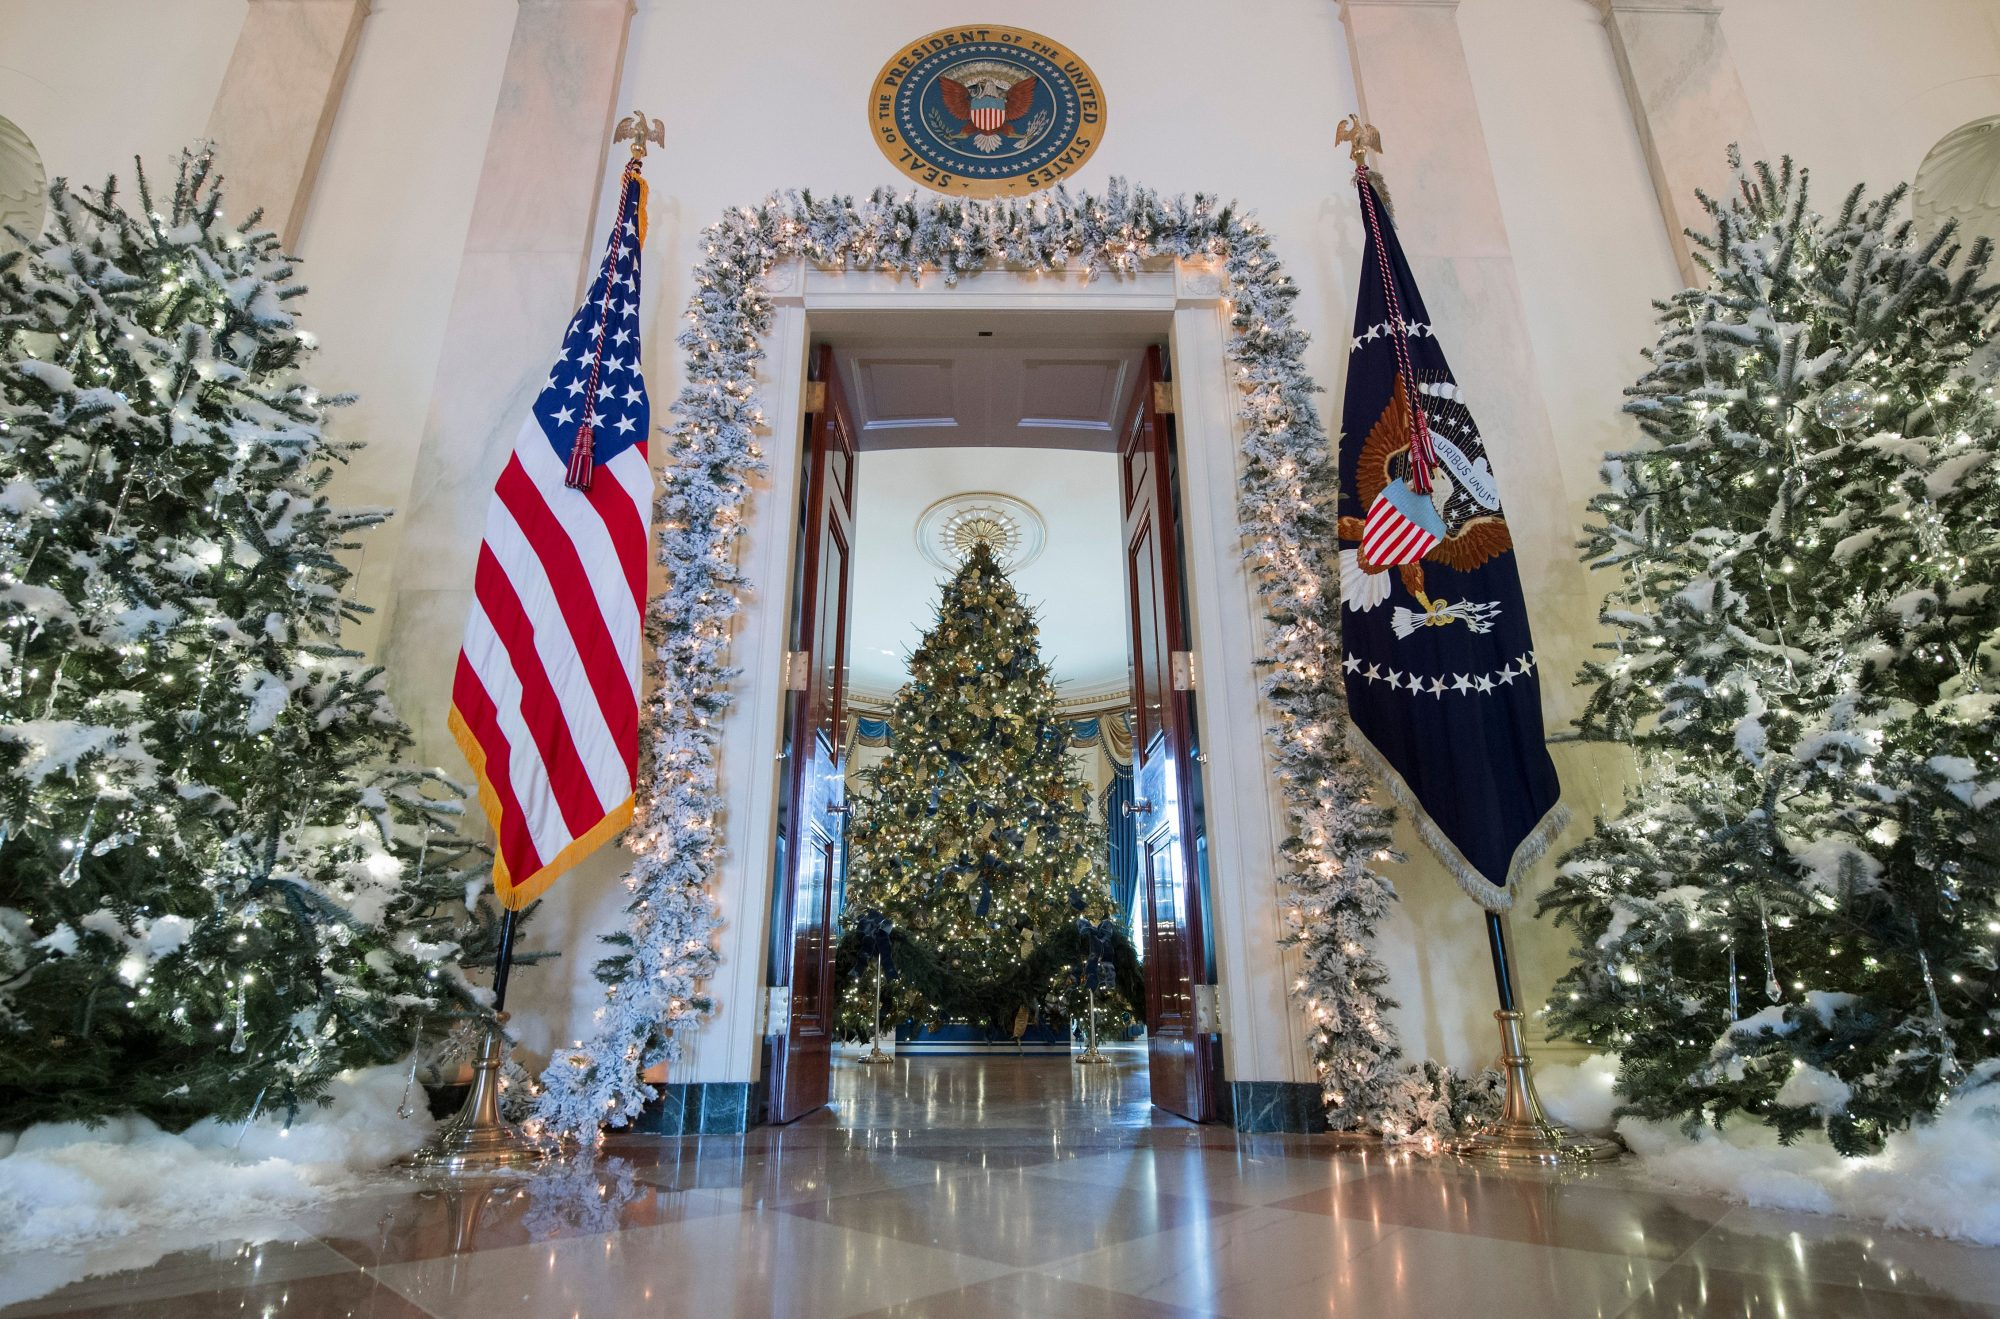 Christmas trees are seen during a preview of holiday decorations in the Grand Foyer of the White House in Washington, DC, November 27, 2017. / AFP PHOTO / SAUL LOEB (Photo credit should read SAUL LOEB/AFP/Getty Images)